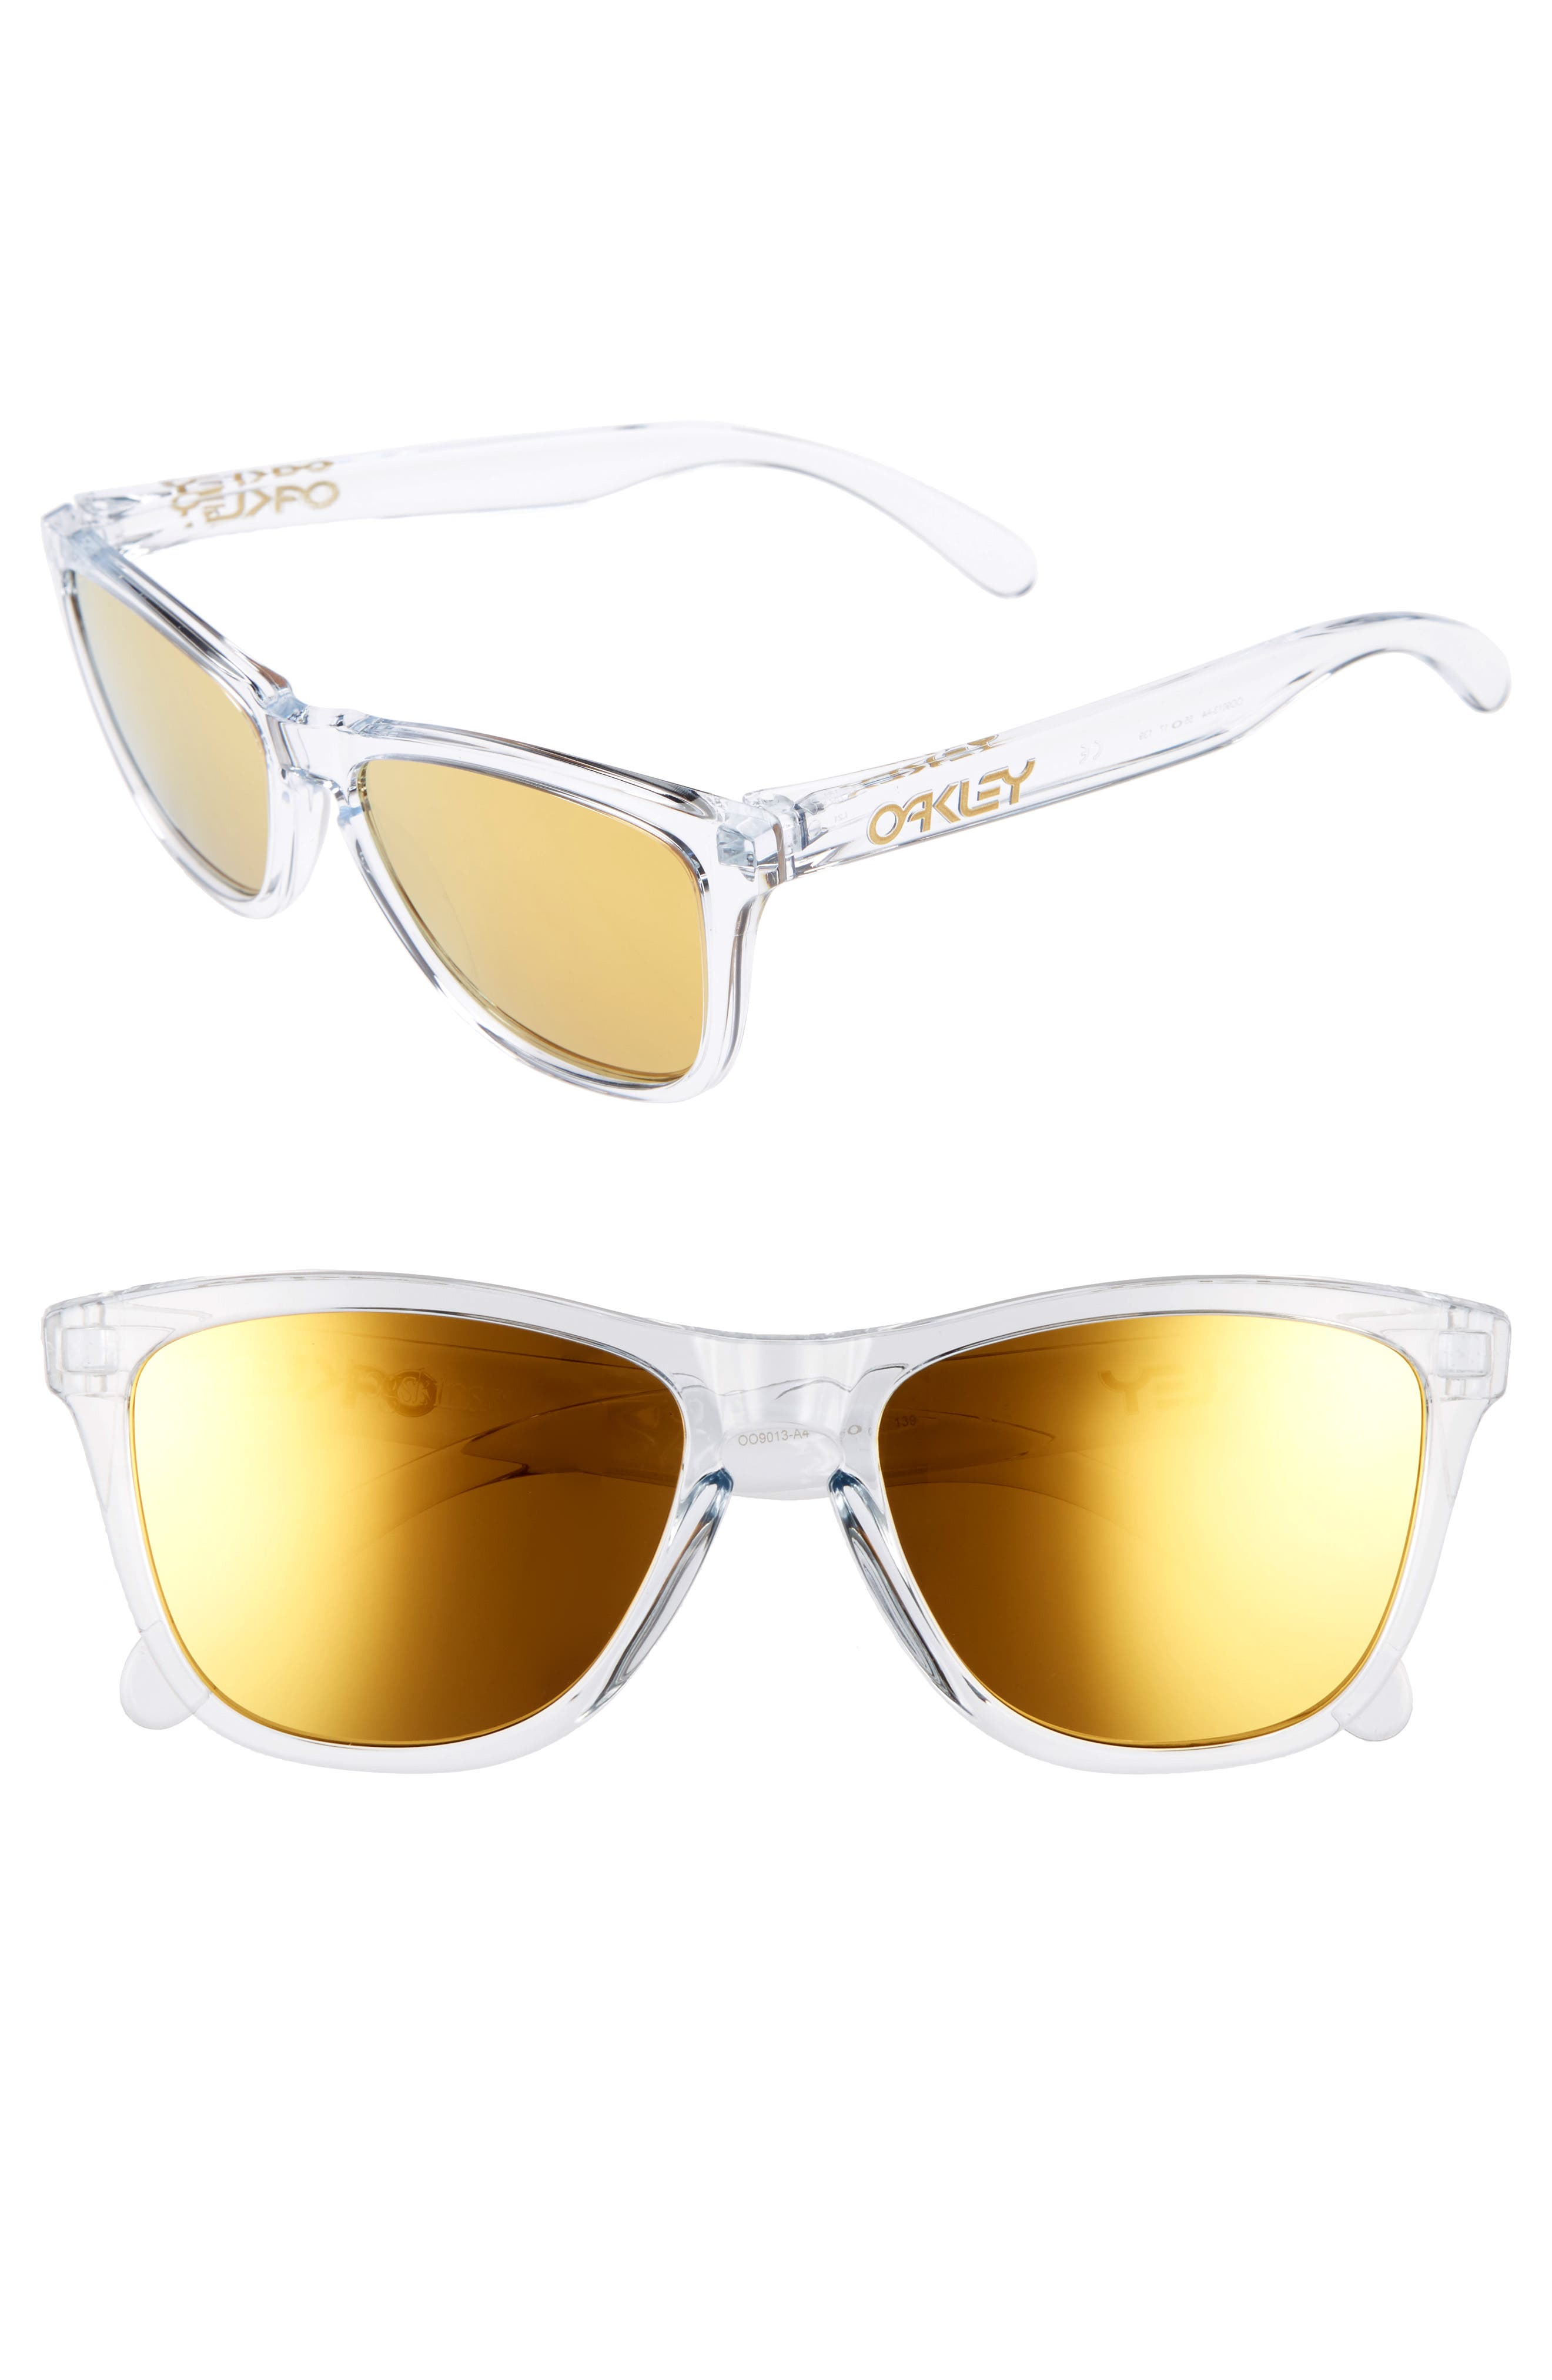 Main Image - Oakley Frogskins® 55mm Sunglasses